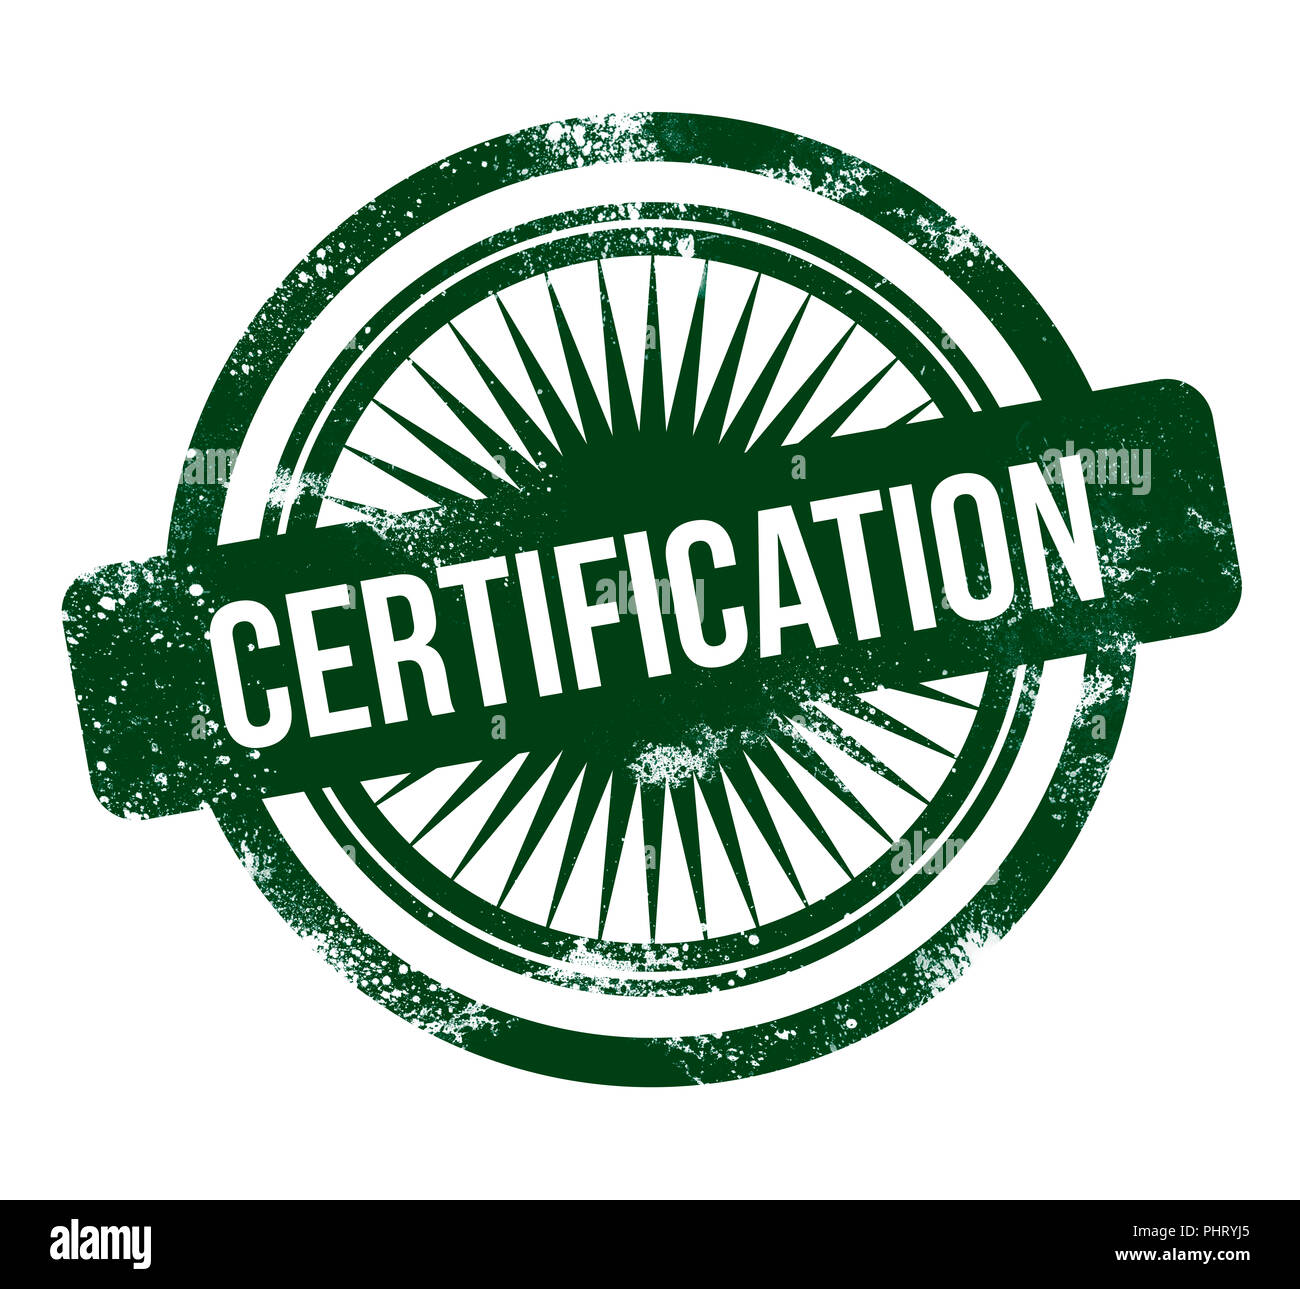 Certification Stamp Stock Photos Images